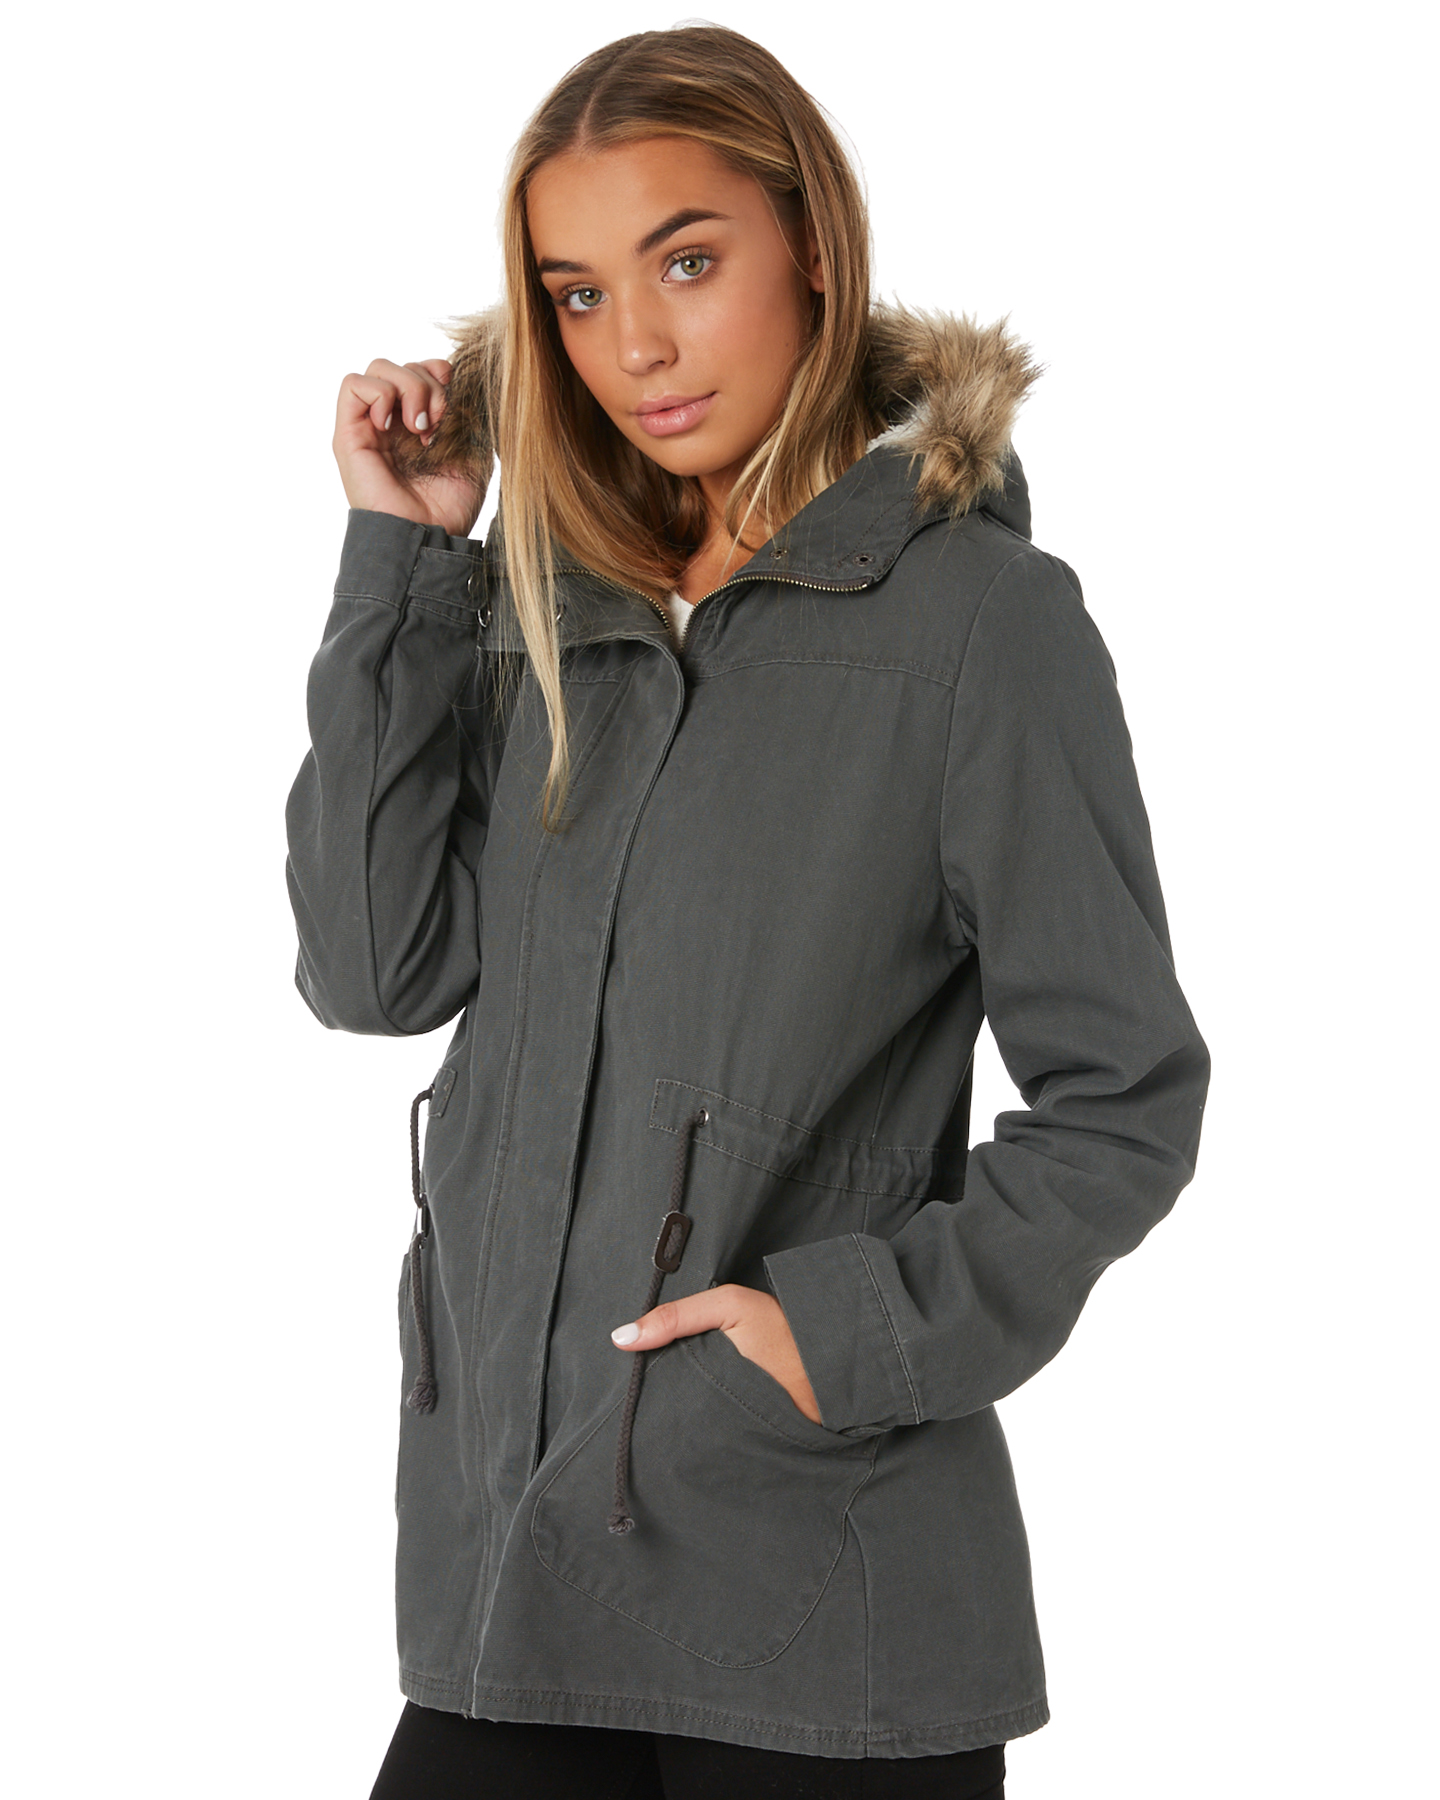 New-Swell-Women-039-s-Fleur-Hooded-Anorak-Cotton-Canvas-Grey thumbnail 7